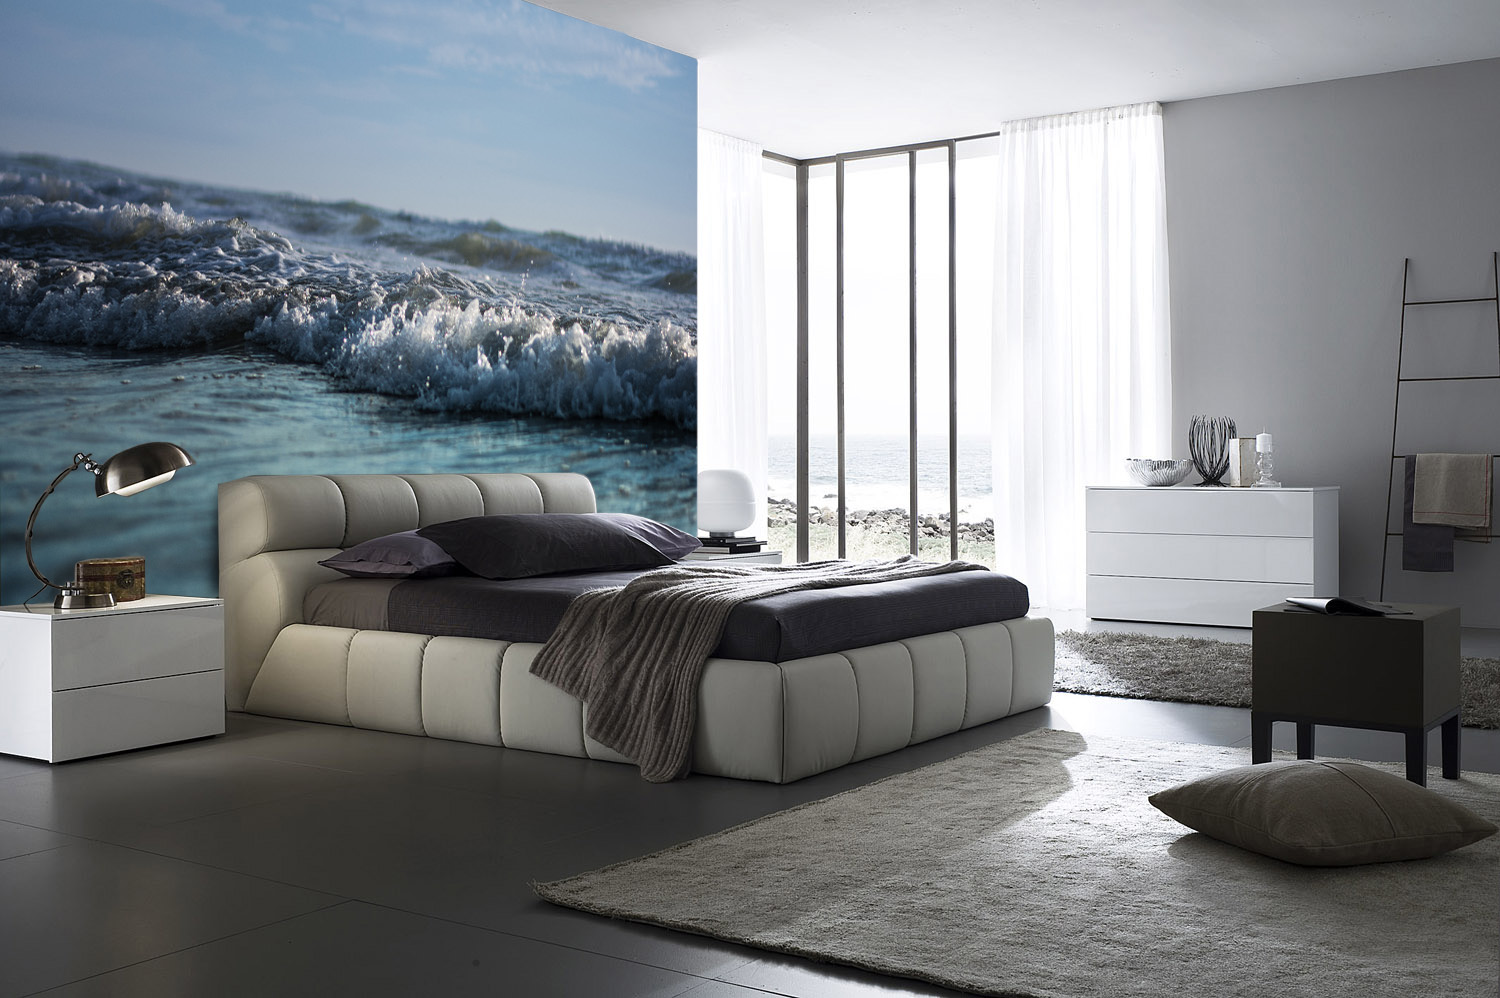 Bedroom at night time - City Wallpaper For Bedroom City Wallpaper Bedroom Cukjati Design